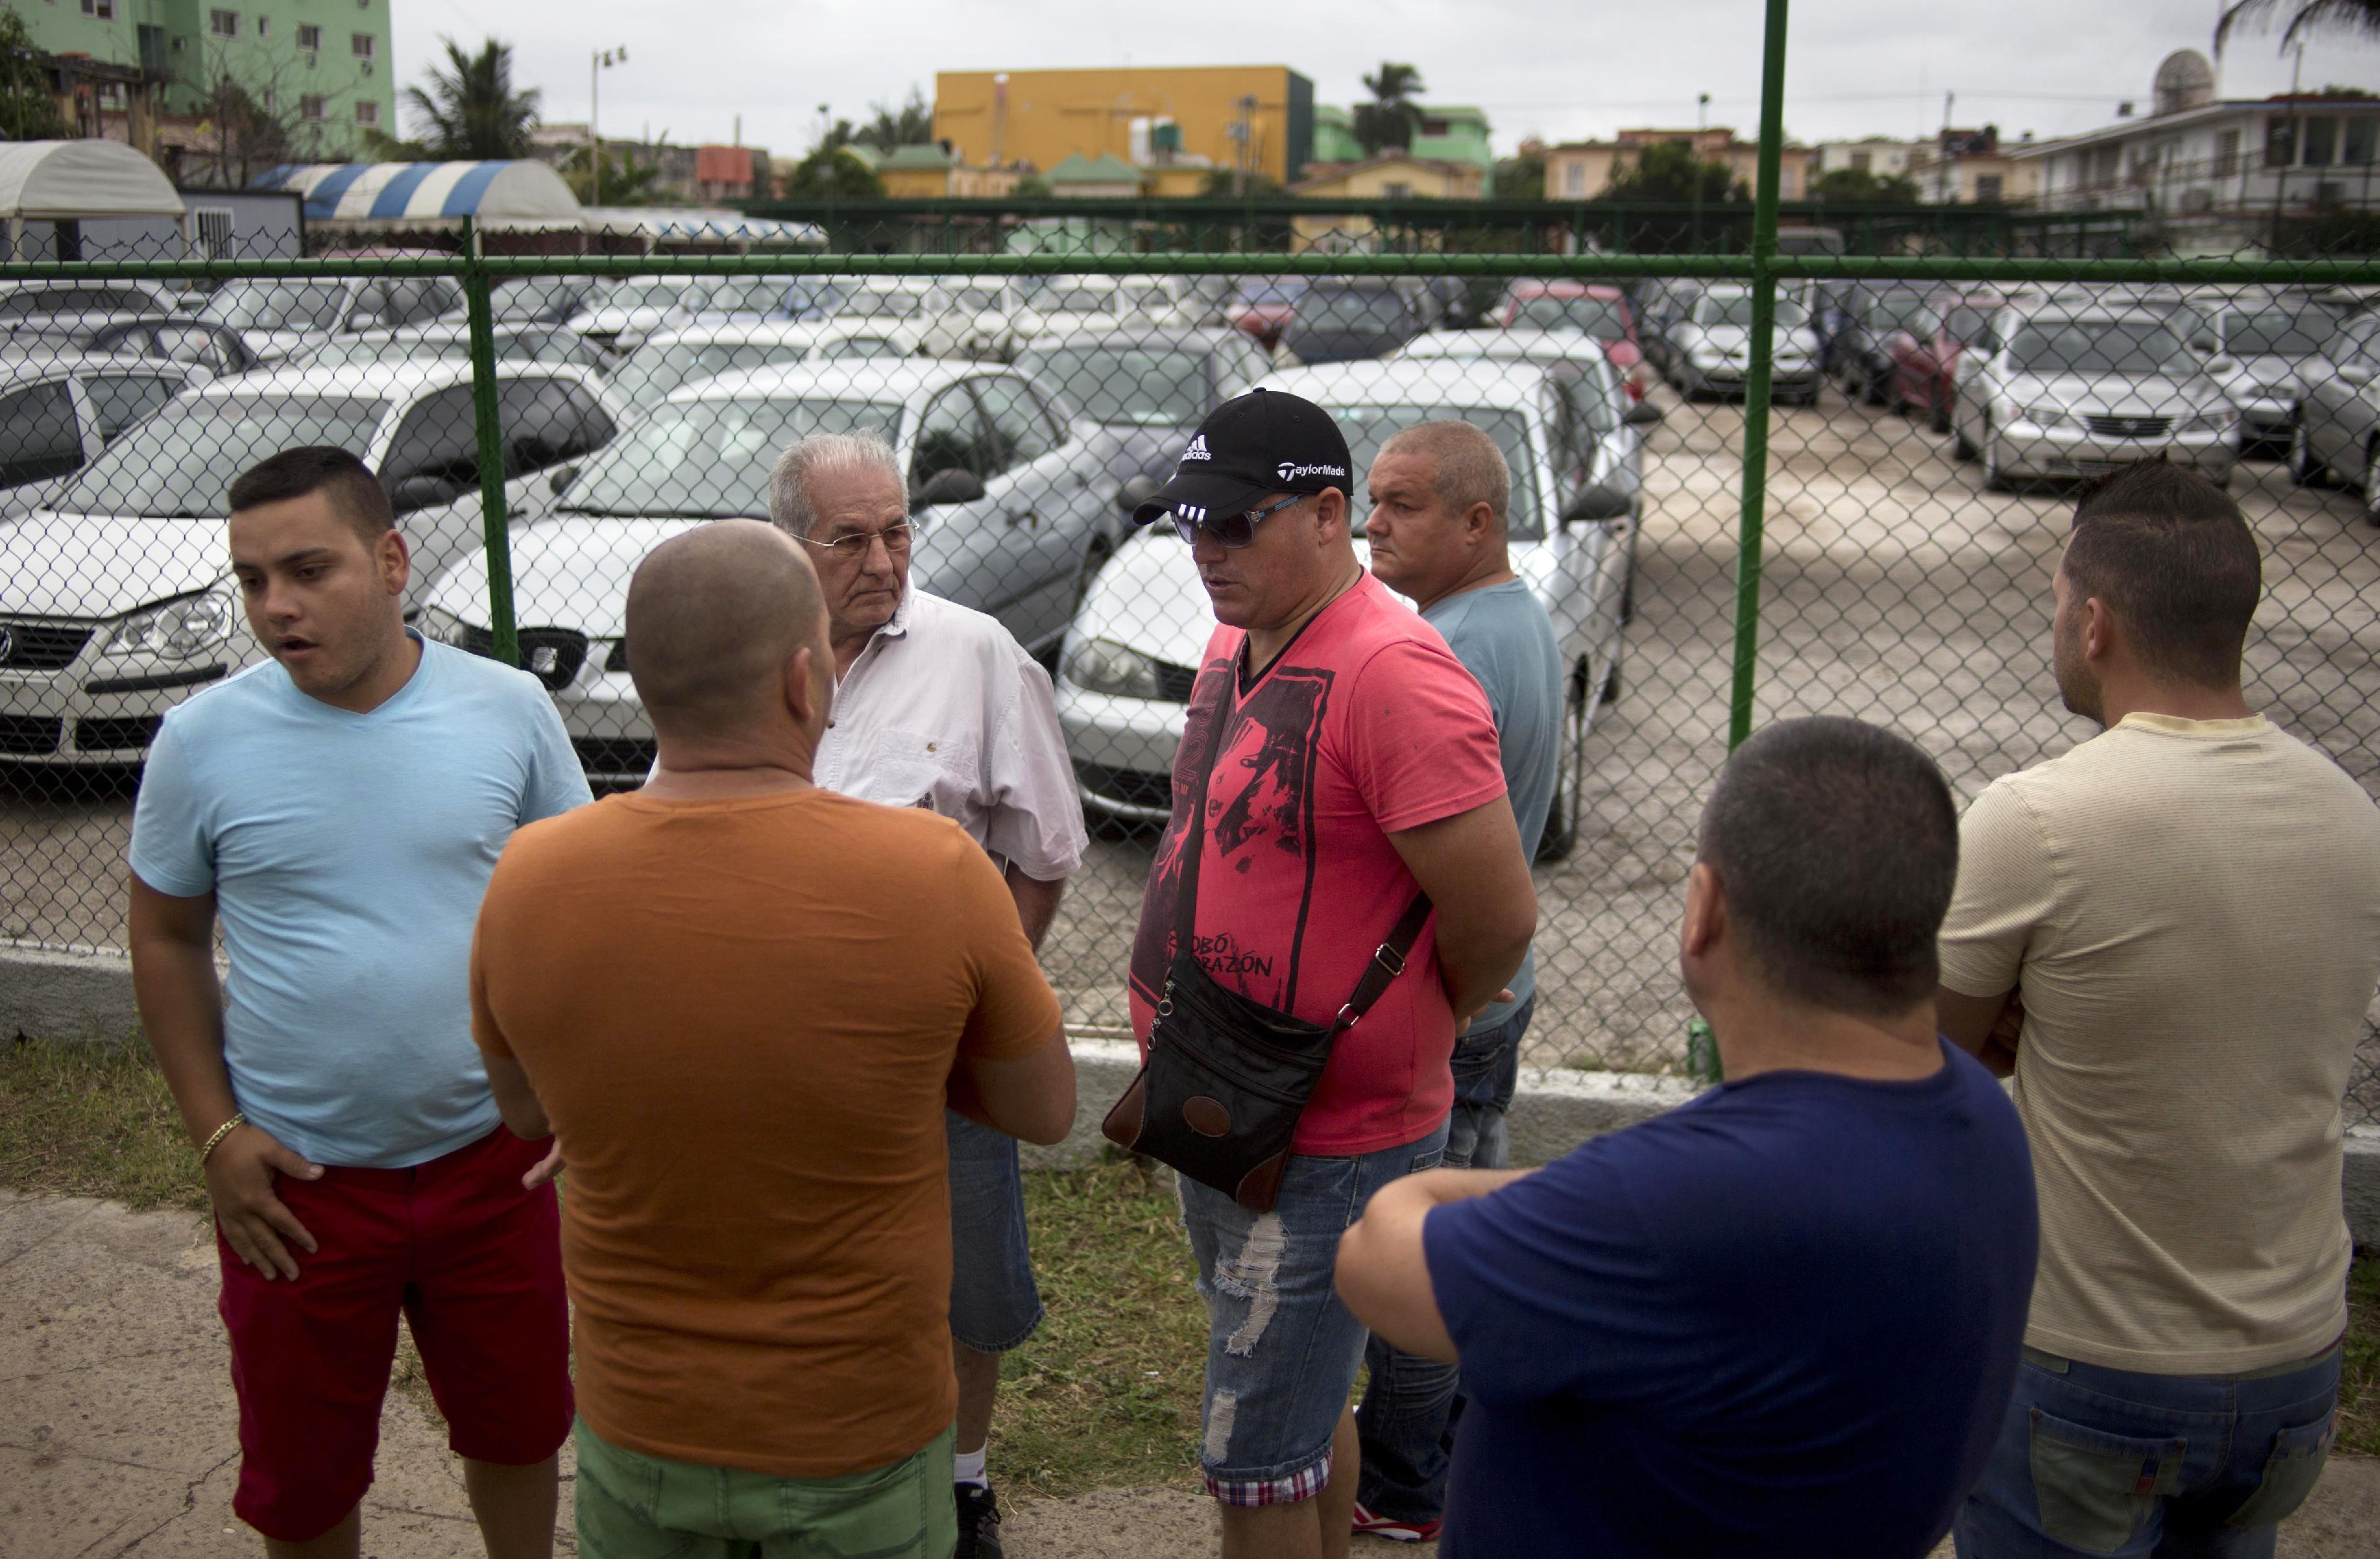 People gather outside a government-run car dealership that sells used vehicles in Havana, Cuba, Friday, Jan. 3, 2014. Cubans are eagerly visiting car dealerships as a new law takes effect on Friday eliminating a special permit requirement that has greatly restricted vehicle ownership in the country. To their dismay they found sharply hiked prices on the first day the law was in force. In Cuba, the government retains its monopoly on a vehicle's market value. (AP Photo/Ramon Espinosa)